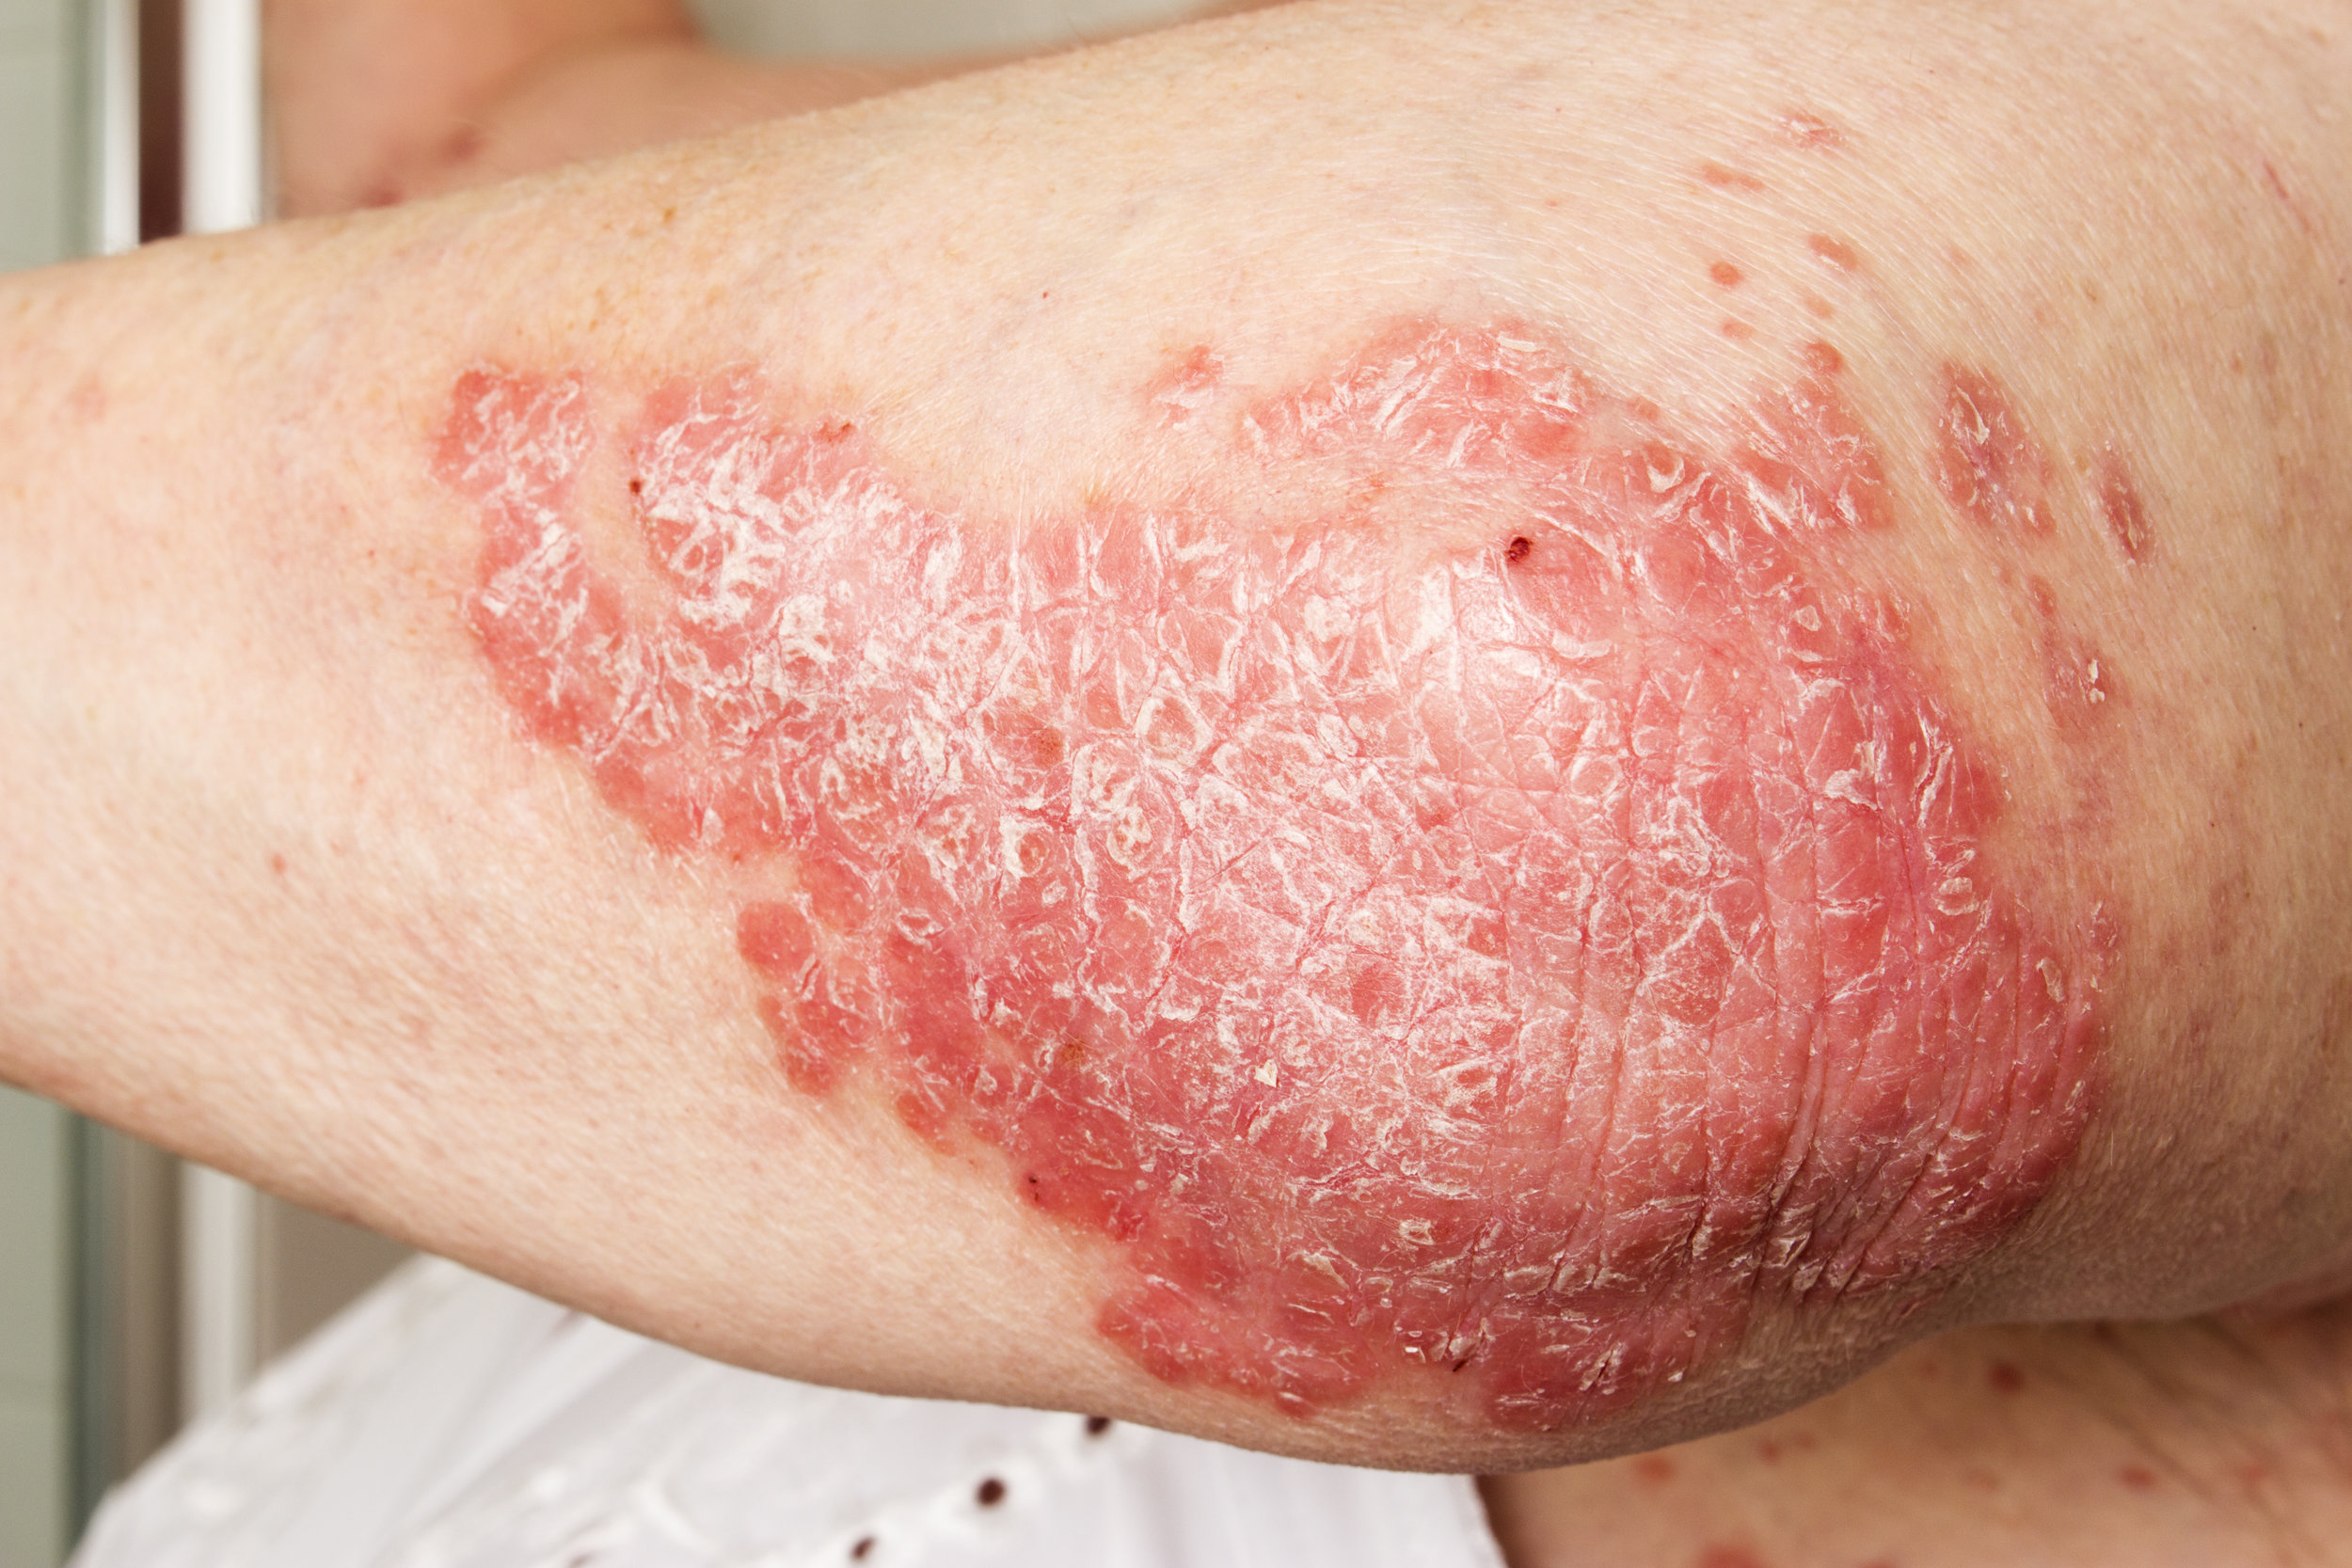 This photo pictures a patient with psoriasis on the elbow